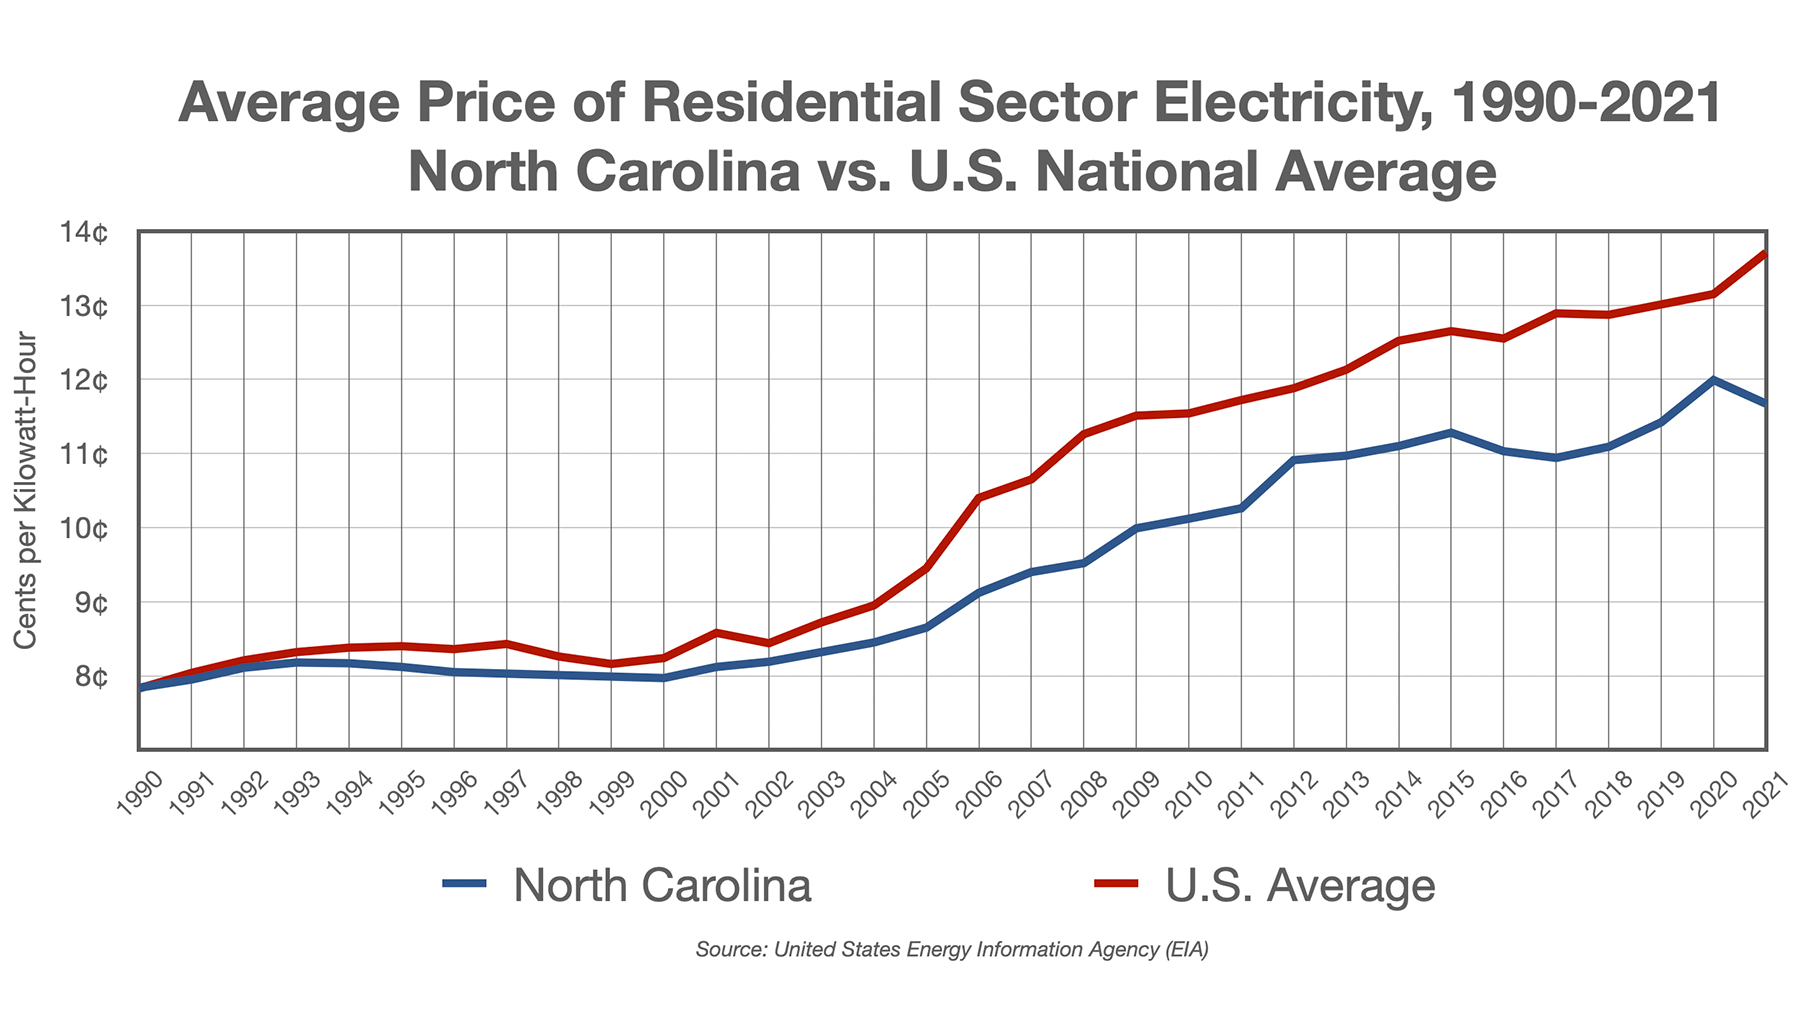 Average Price of Residential Sector Electricity, 1990-2021